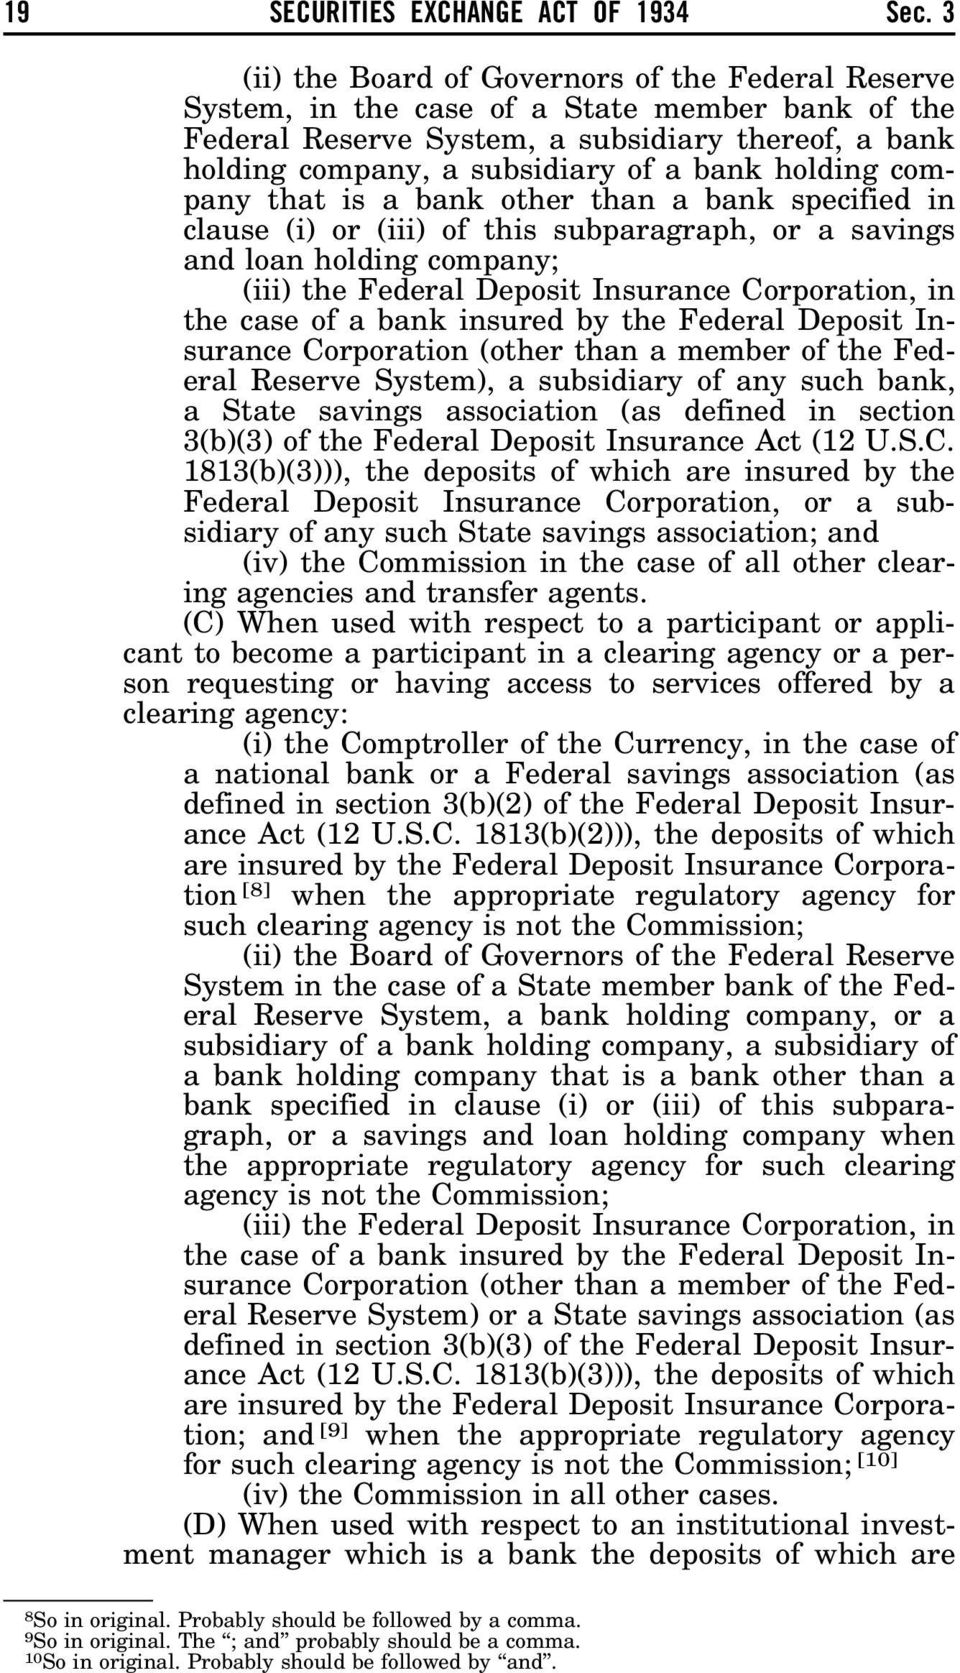 holding company that is a bank other than a bank specified in clause (i) or (iii) of this subparagraph, or a savings and loan holding company; (iii) the Federal Deposit Insurance Corporation, in the